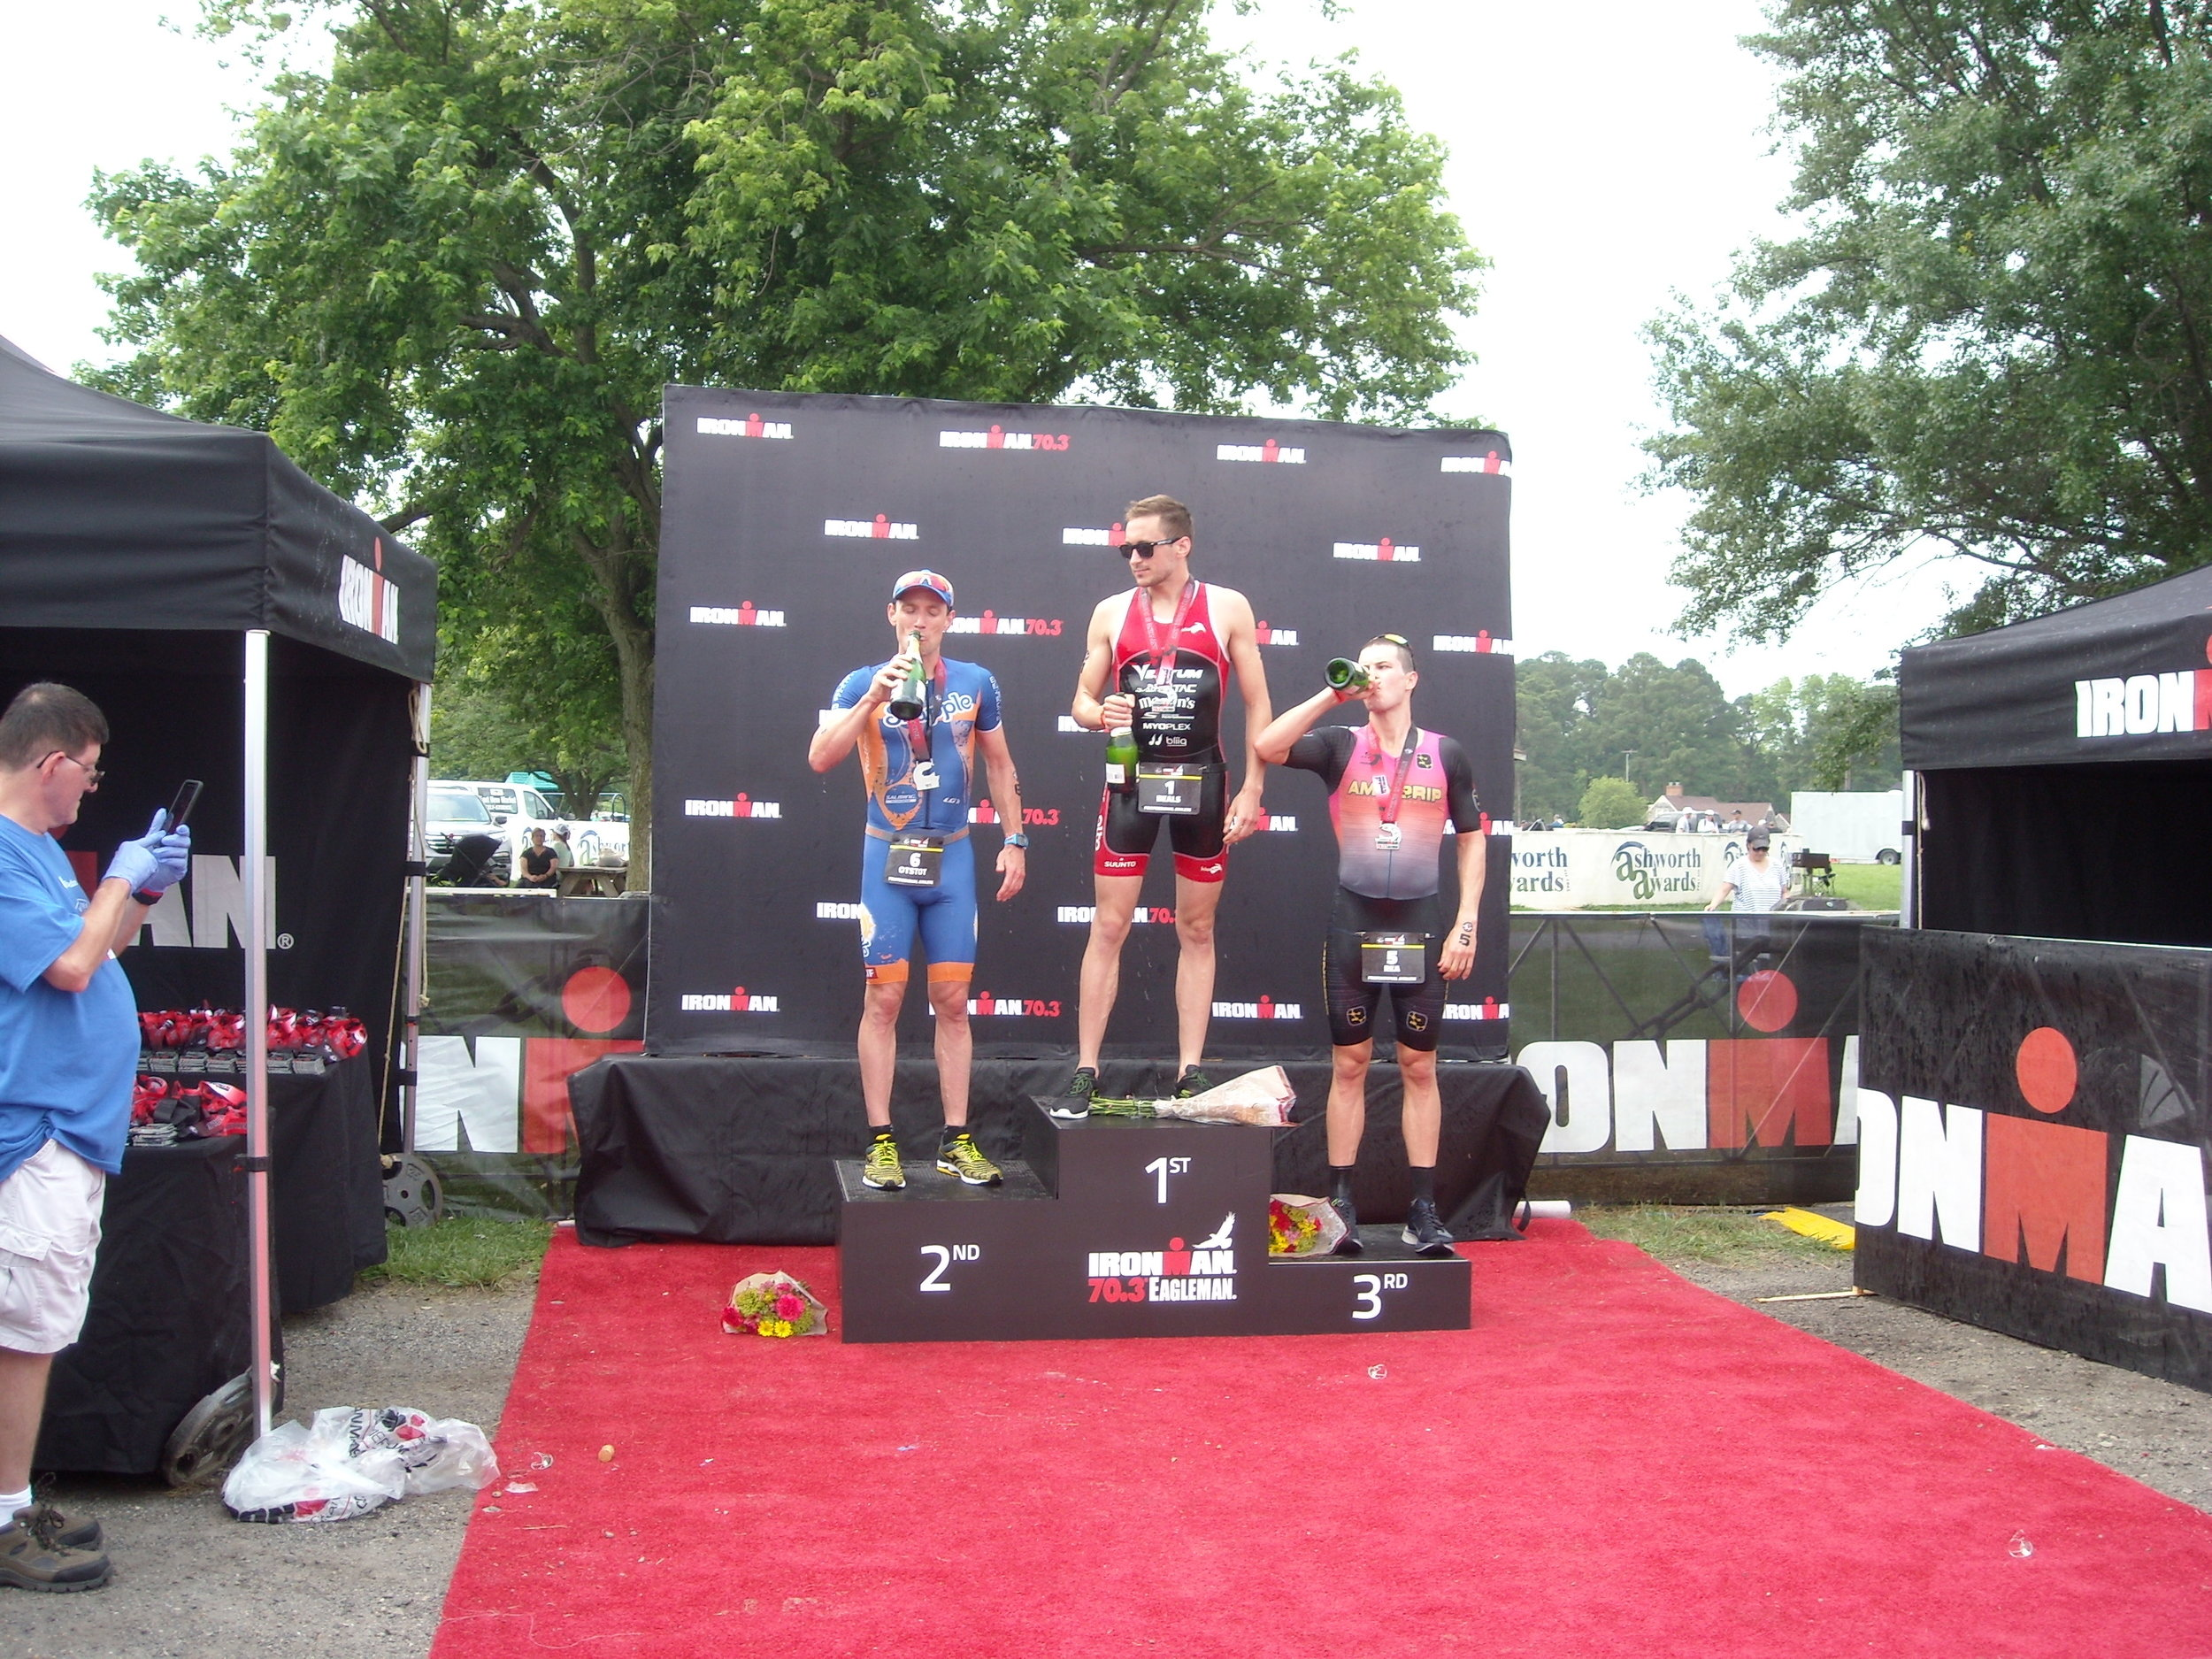 Coach_Terry_Wilson_Ironman_70.3_Eagleman_Adam_Otstot_2018_Drinking.JPG